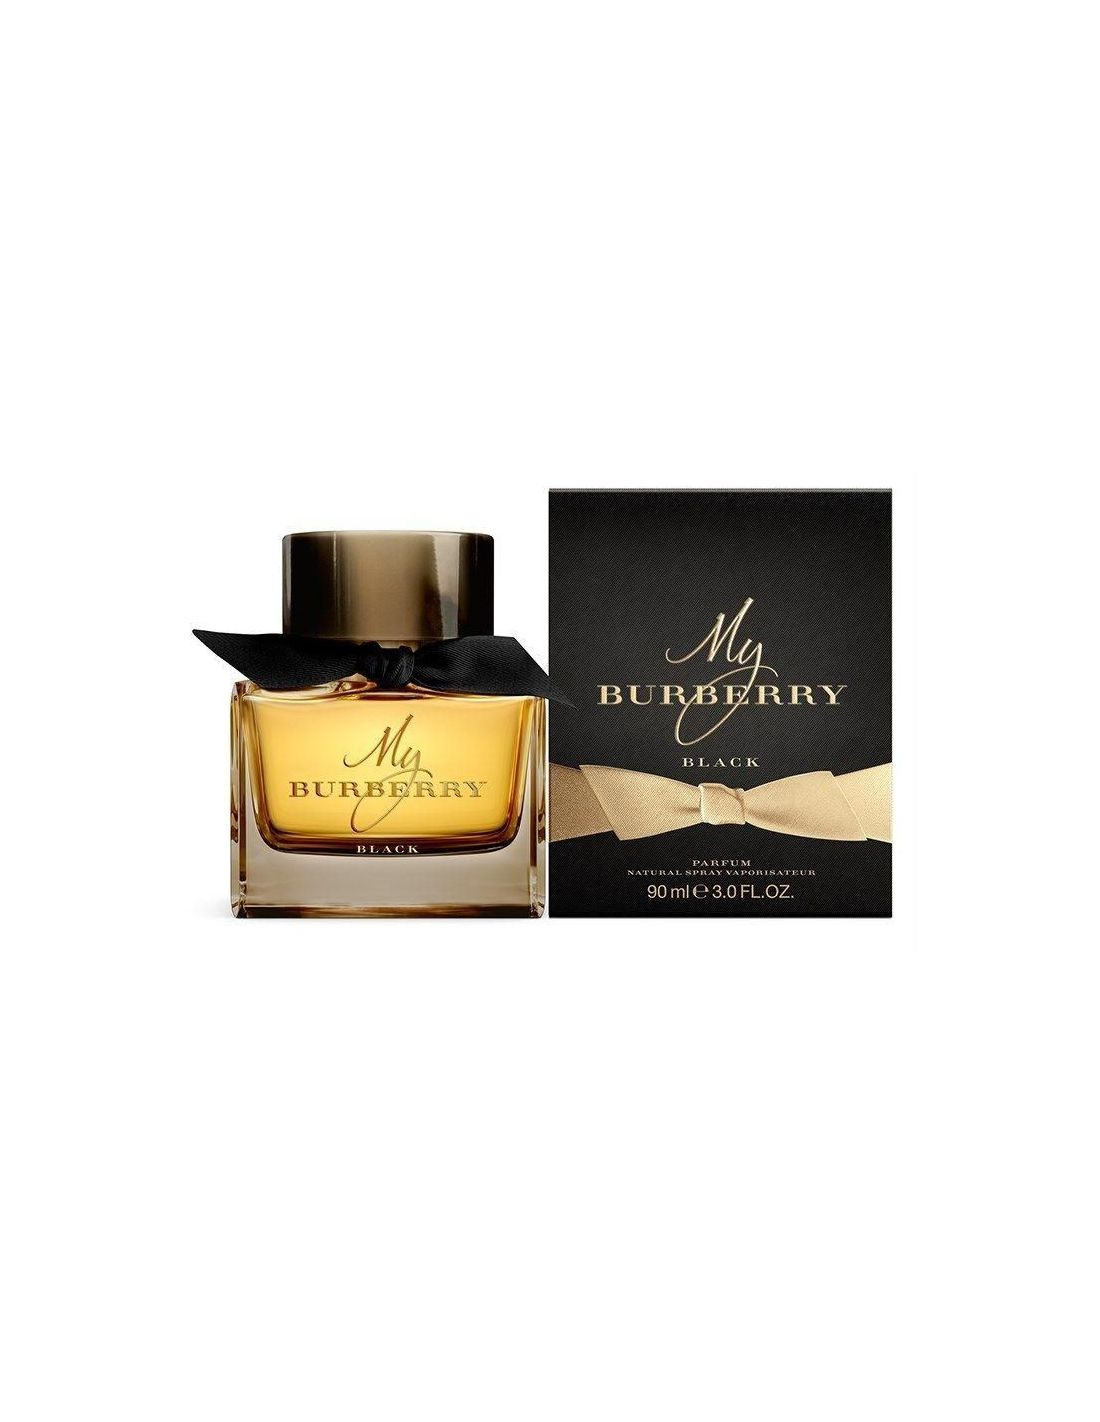 burberry my burberry black eau de parfum 90 ml perfumes 24 perfumaria online. Black Bedroom Furniture Sets. Home Design Ideas